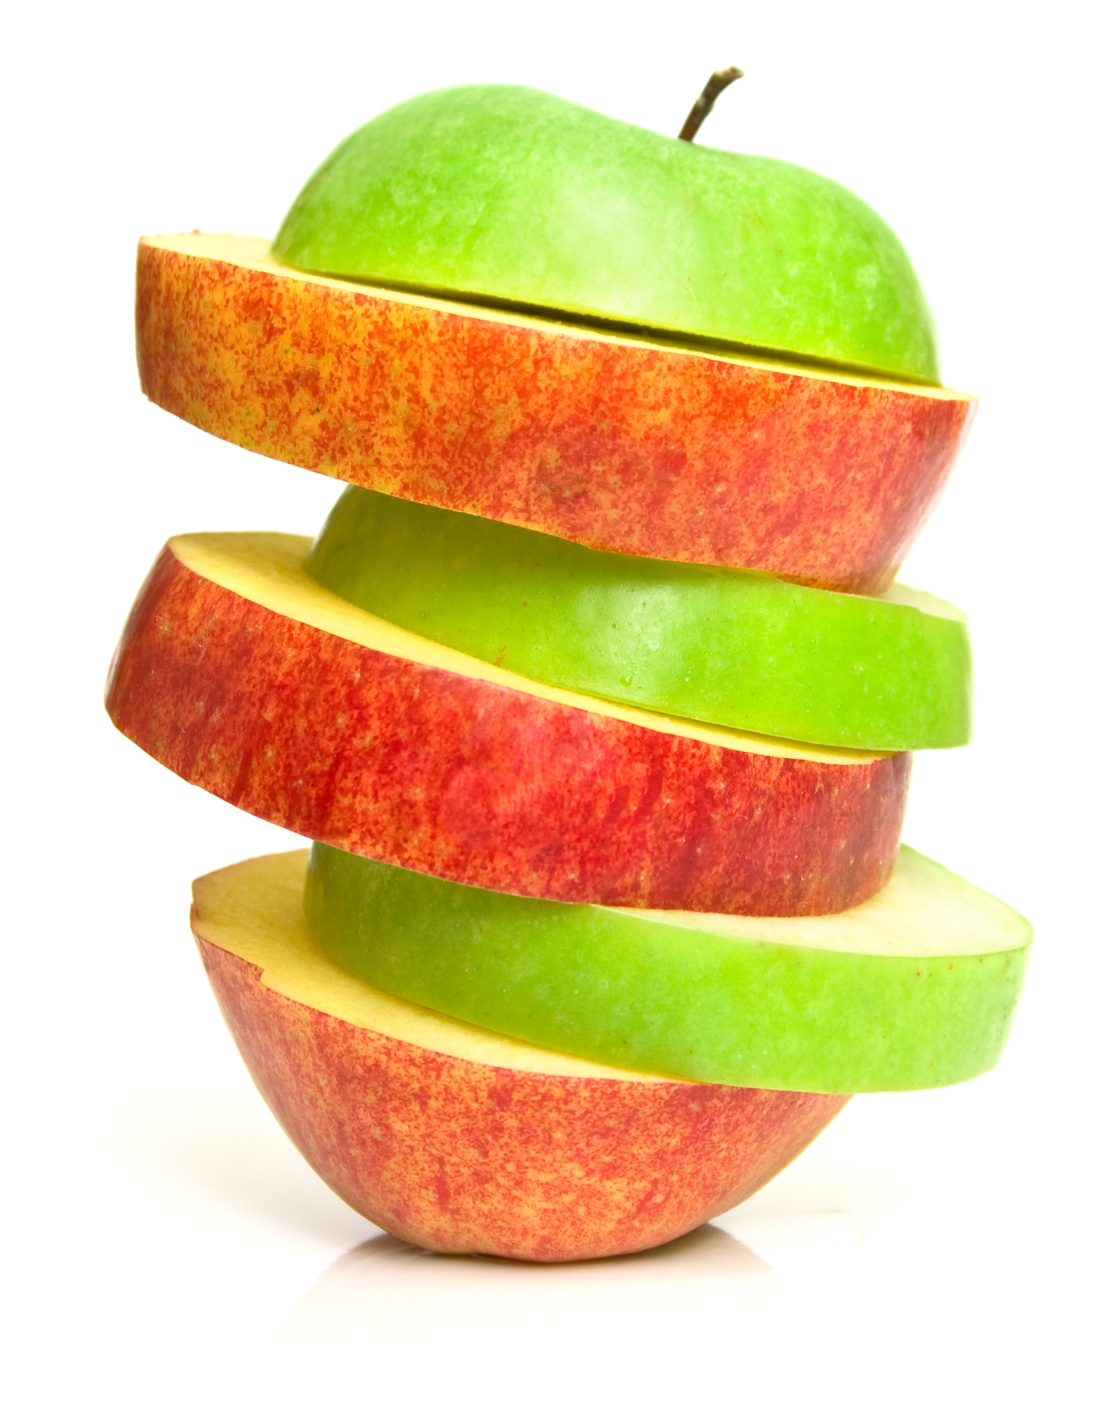 apple and pear pyramid pic